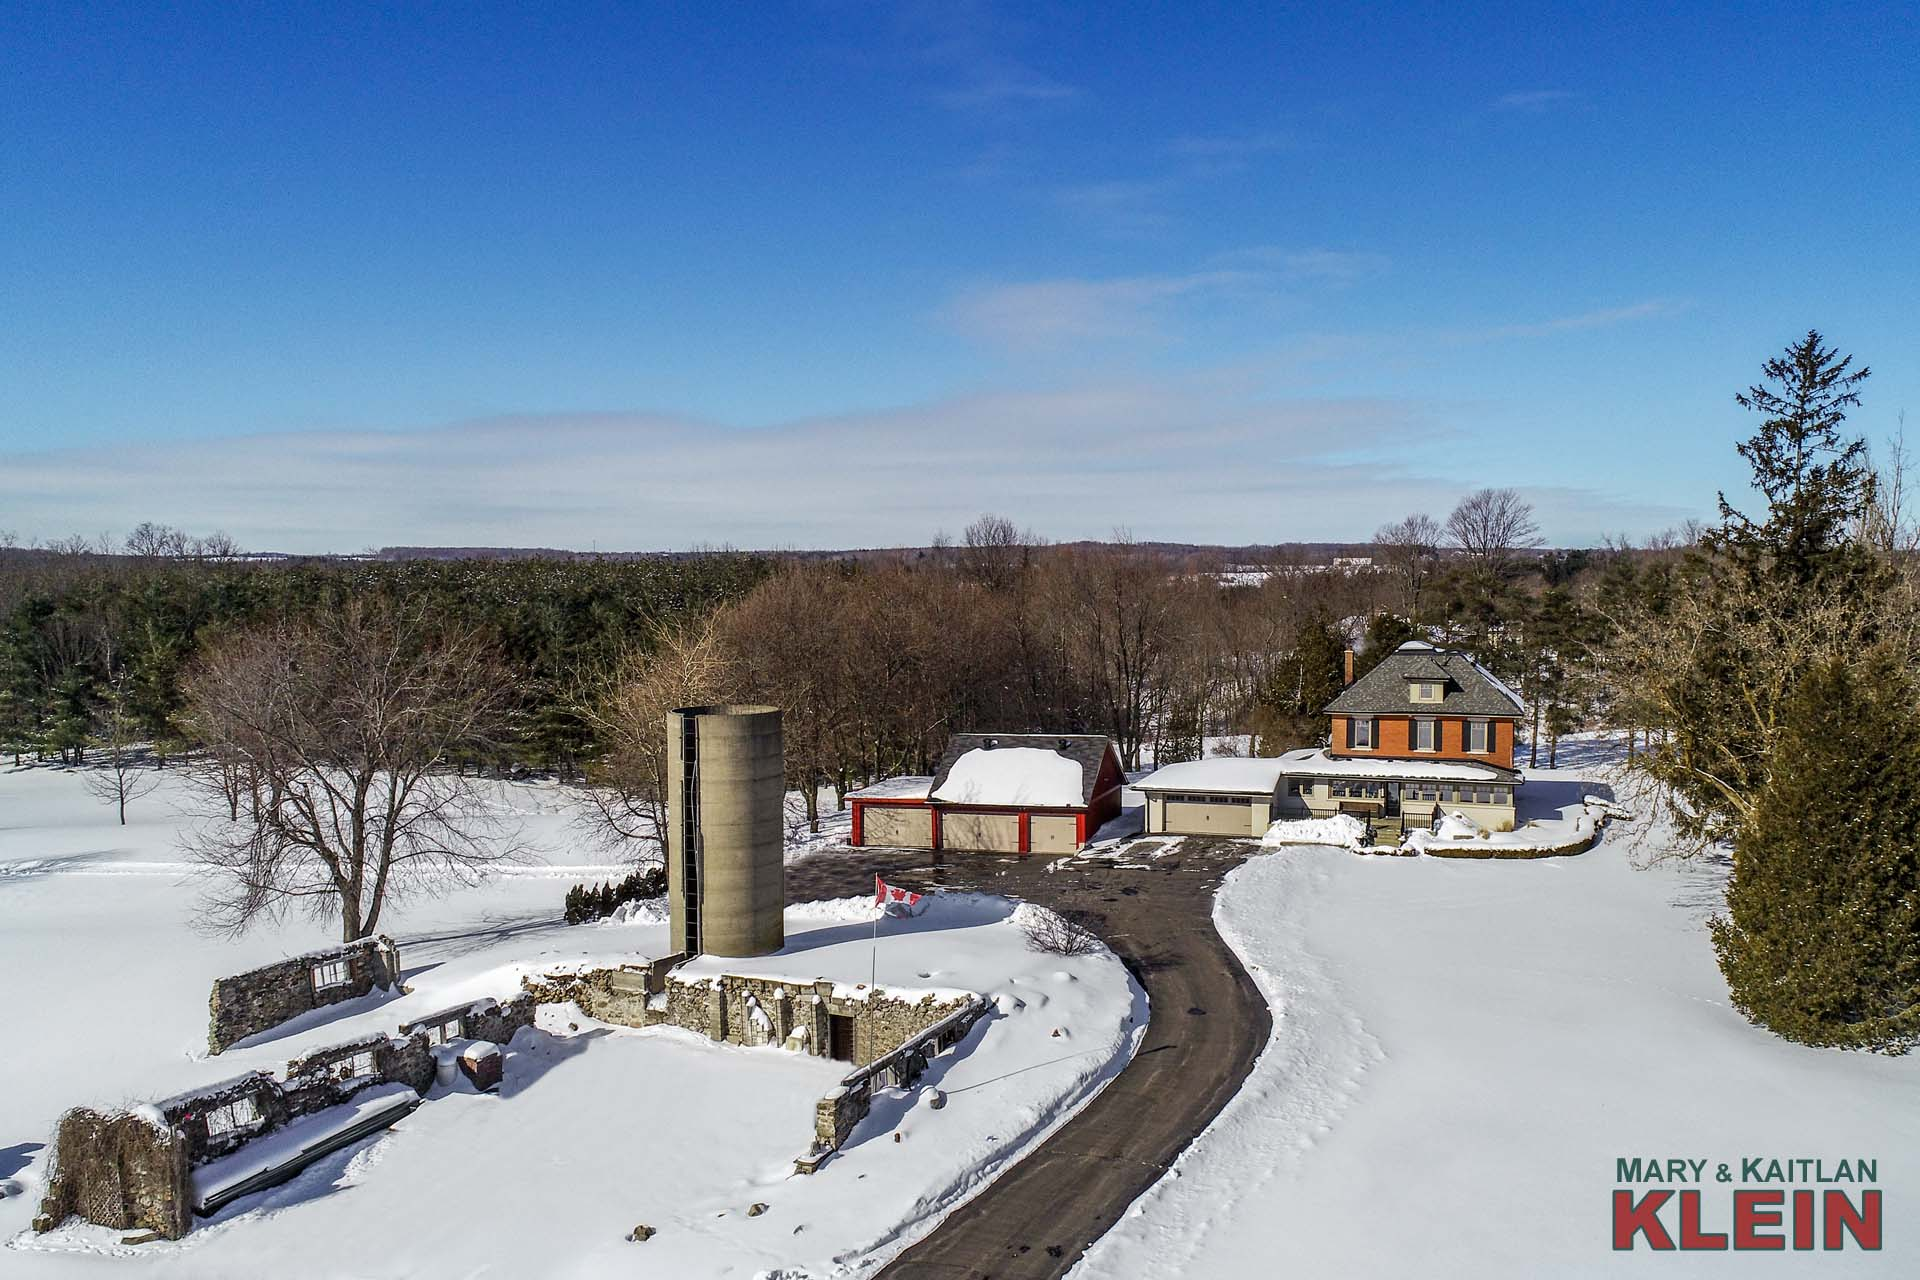 5 Bedroom home for Sale on 30 Acres in Caledon, KLEIN